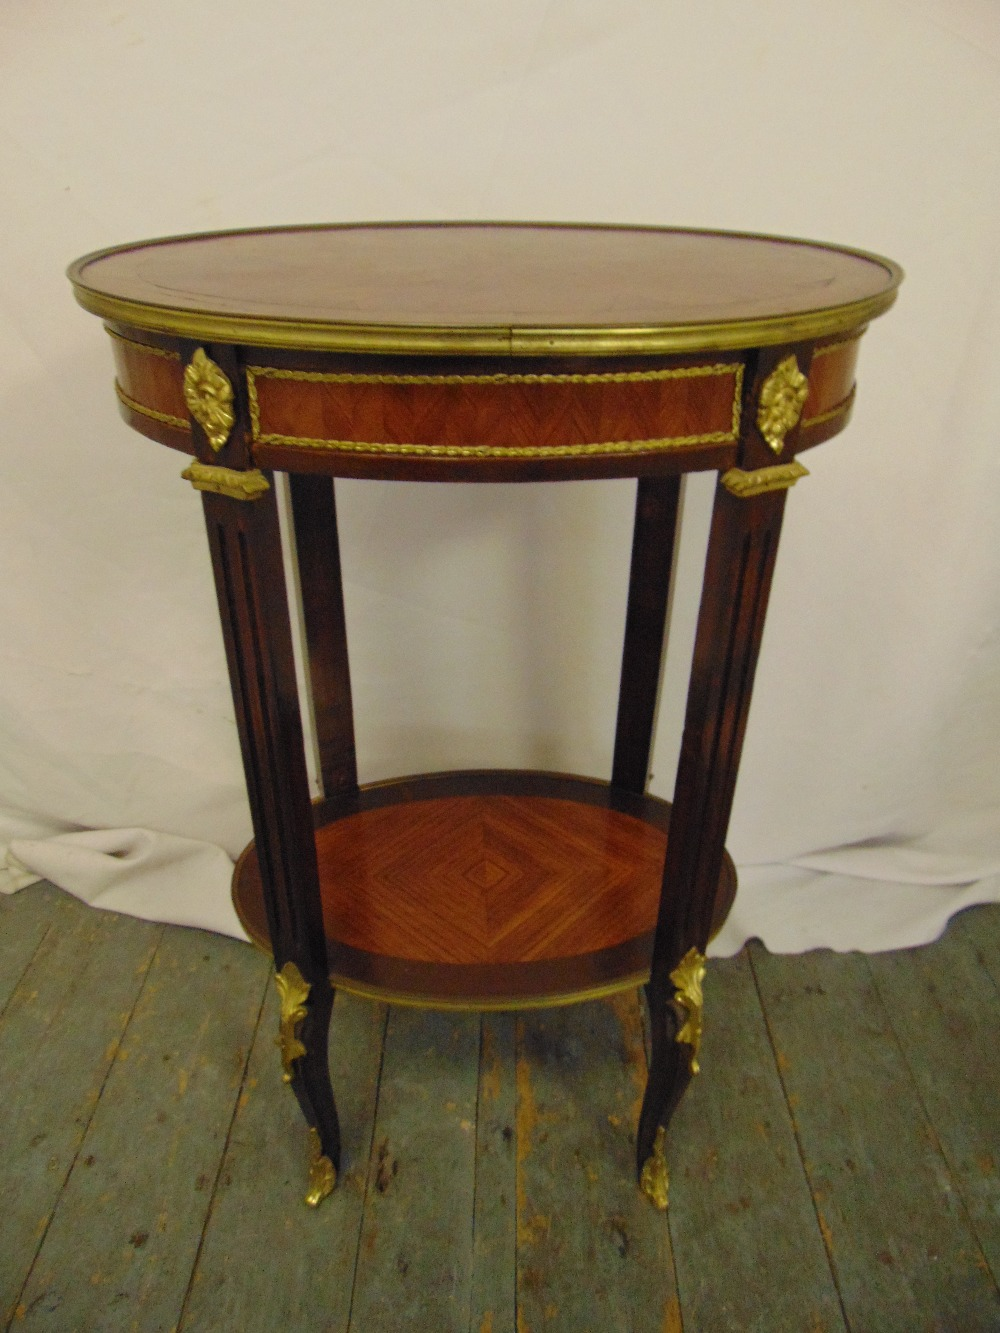 Lot 6 - A French oval mahogany, kingwood parquetry and gilt metal occasional table on four cabriole legs, 77